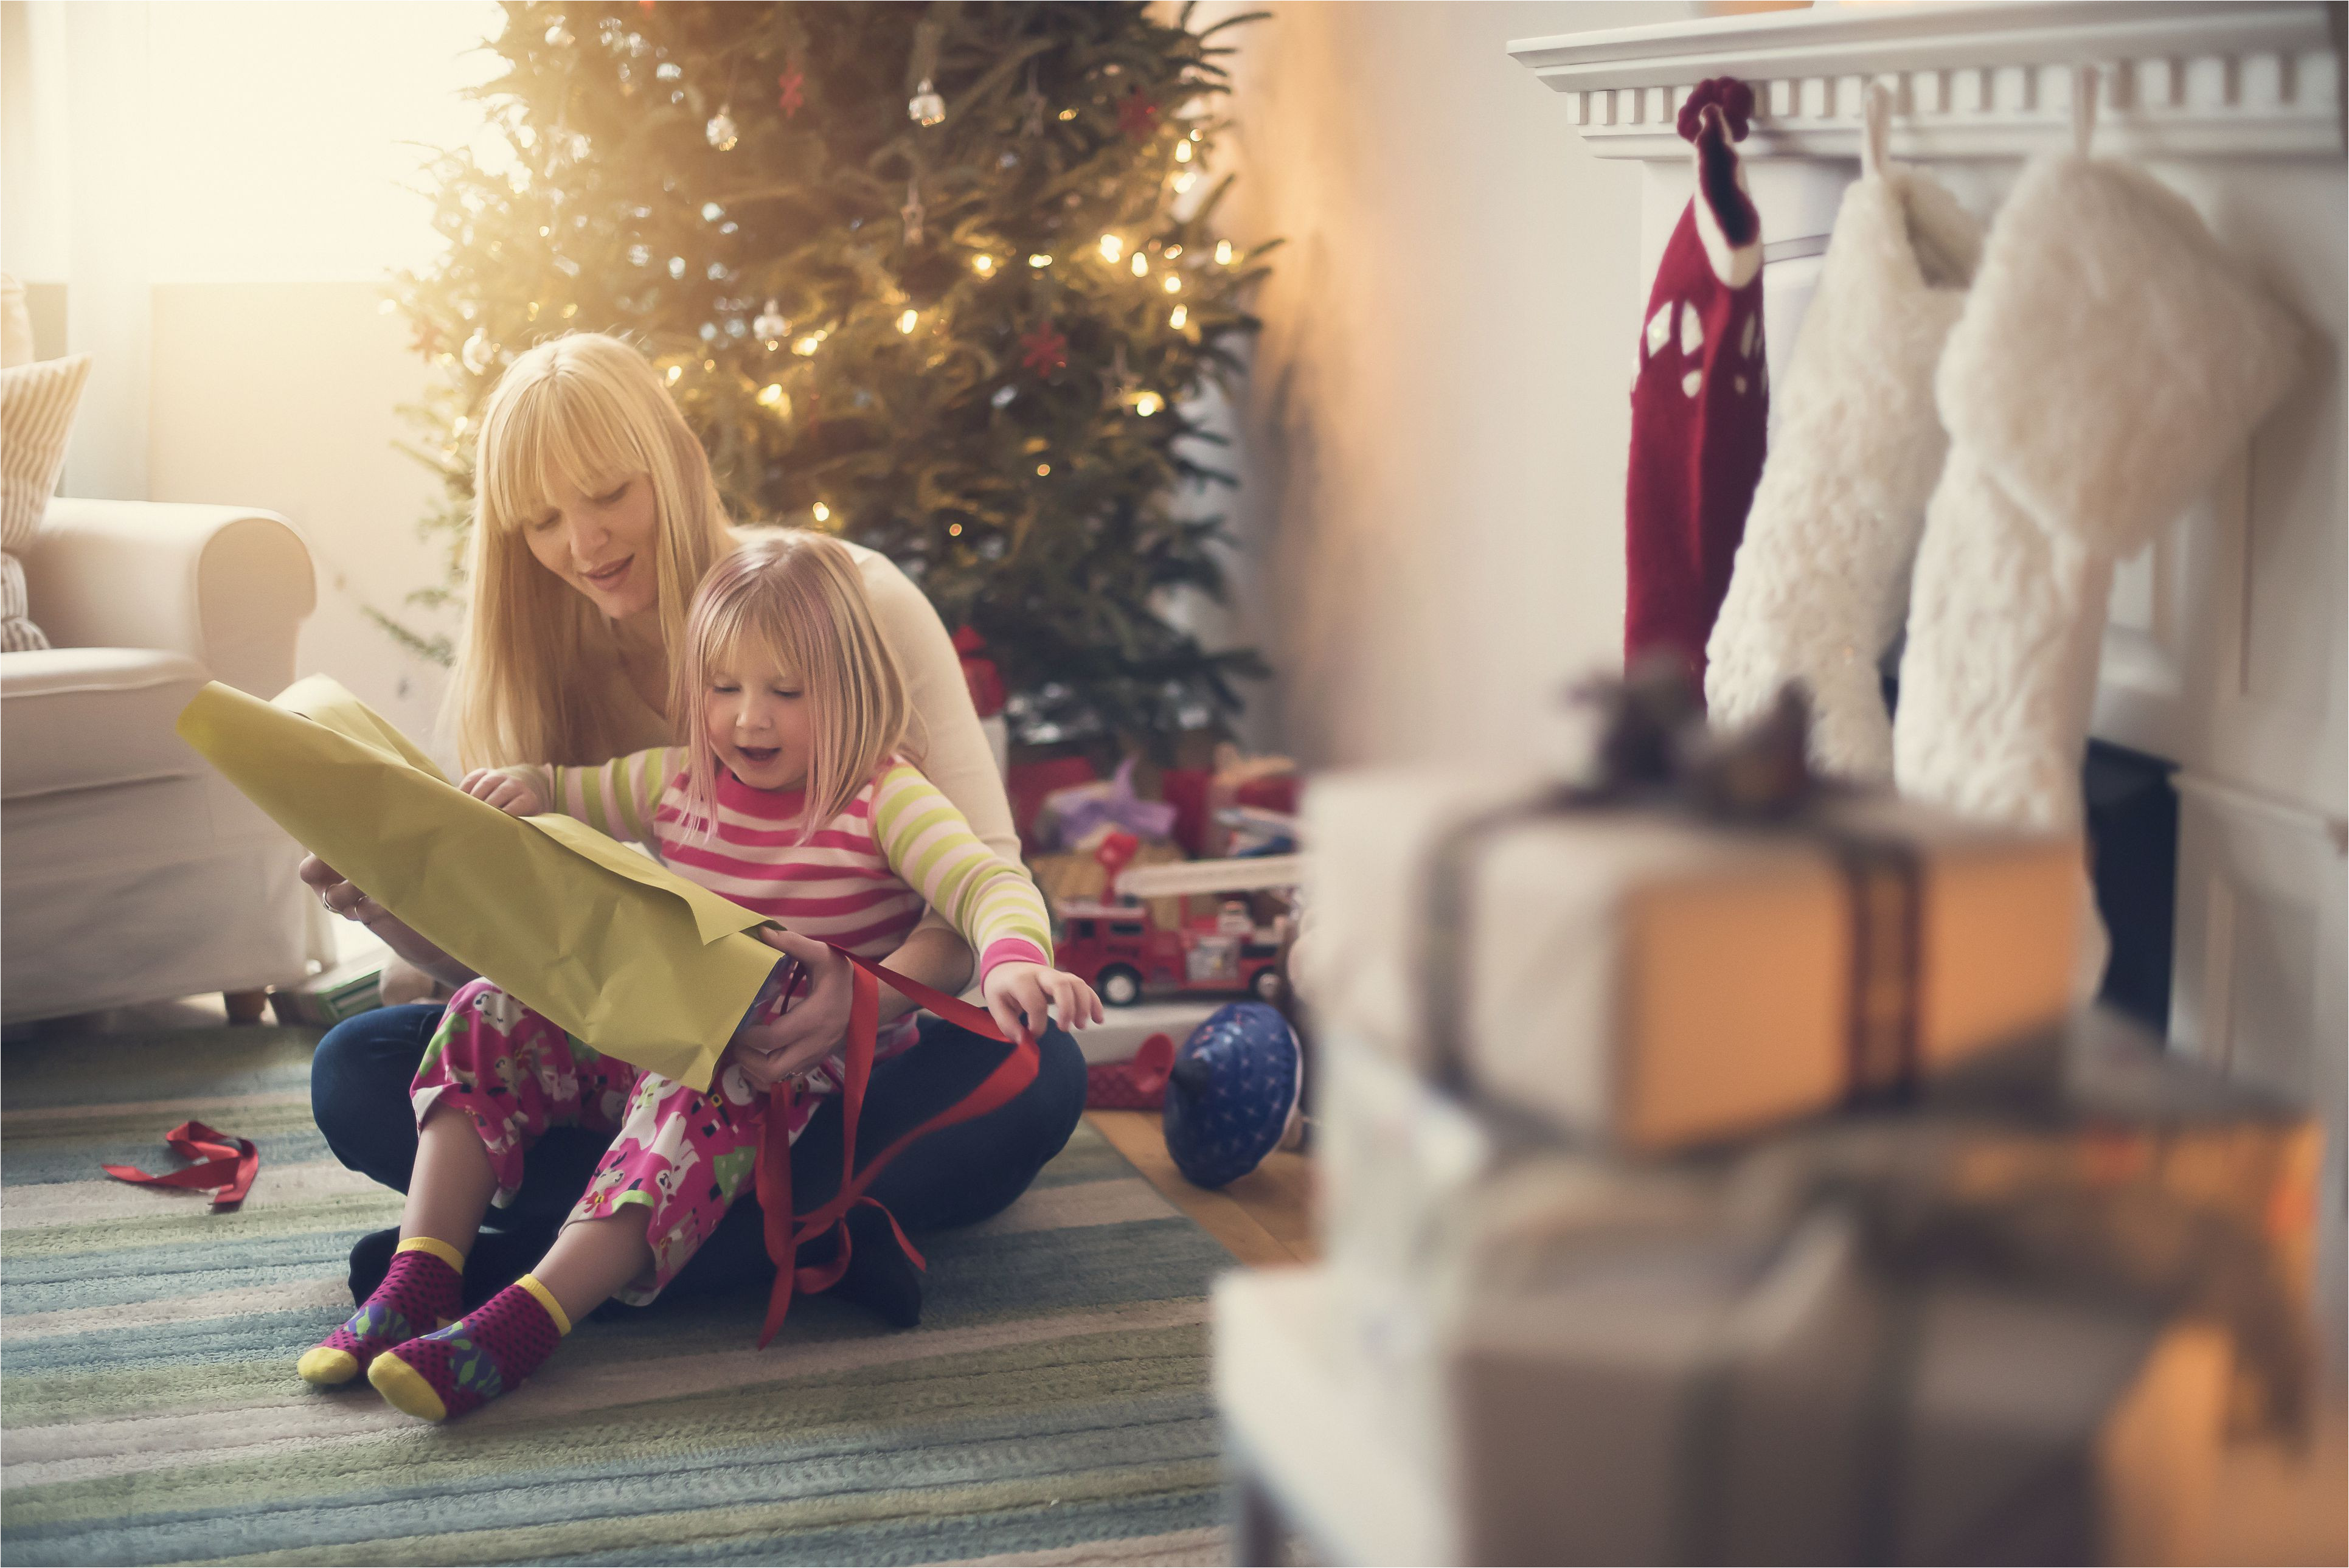 usa new jersey mother and daughter 4 5 opening christmas presents 545865475 5a25686d96f7d000190a7fa5 jpg